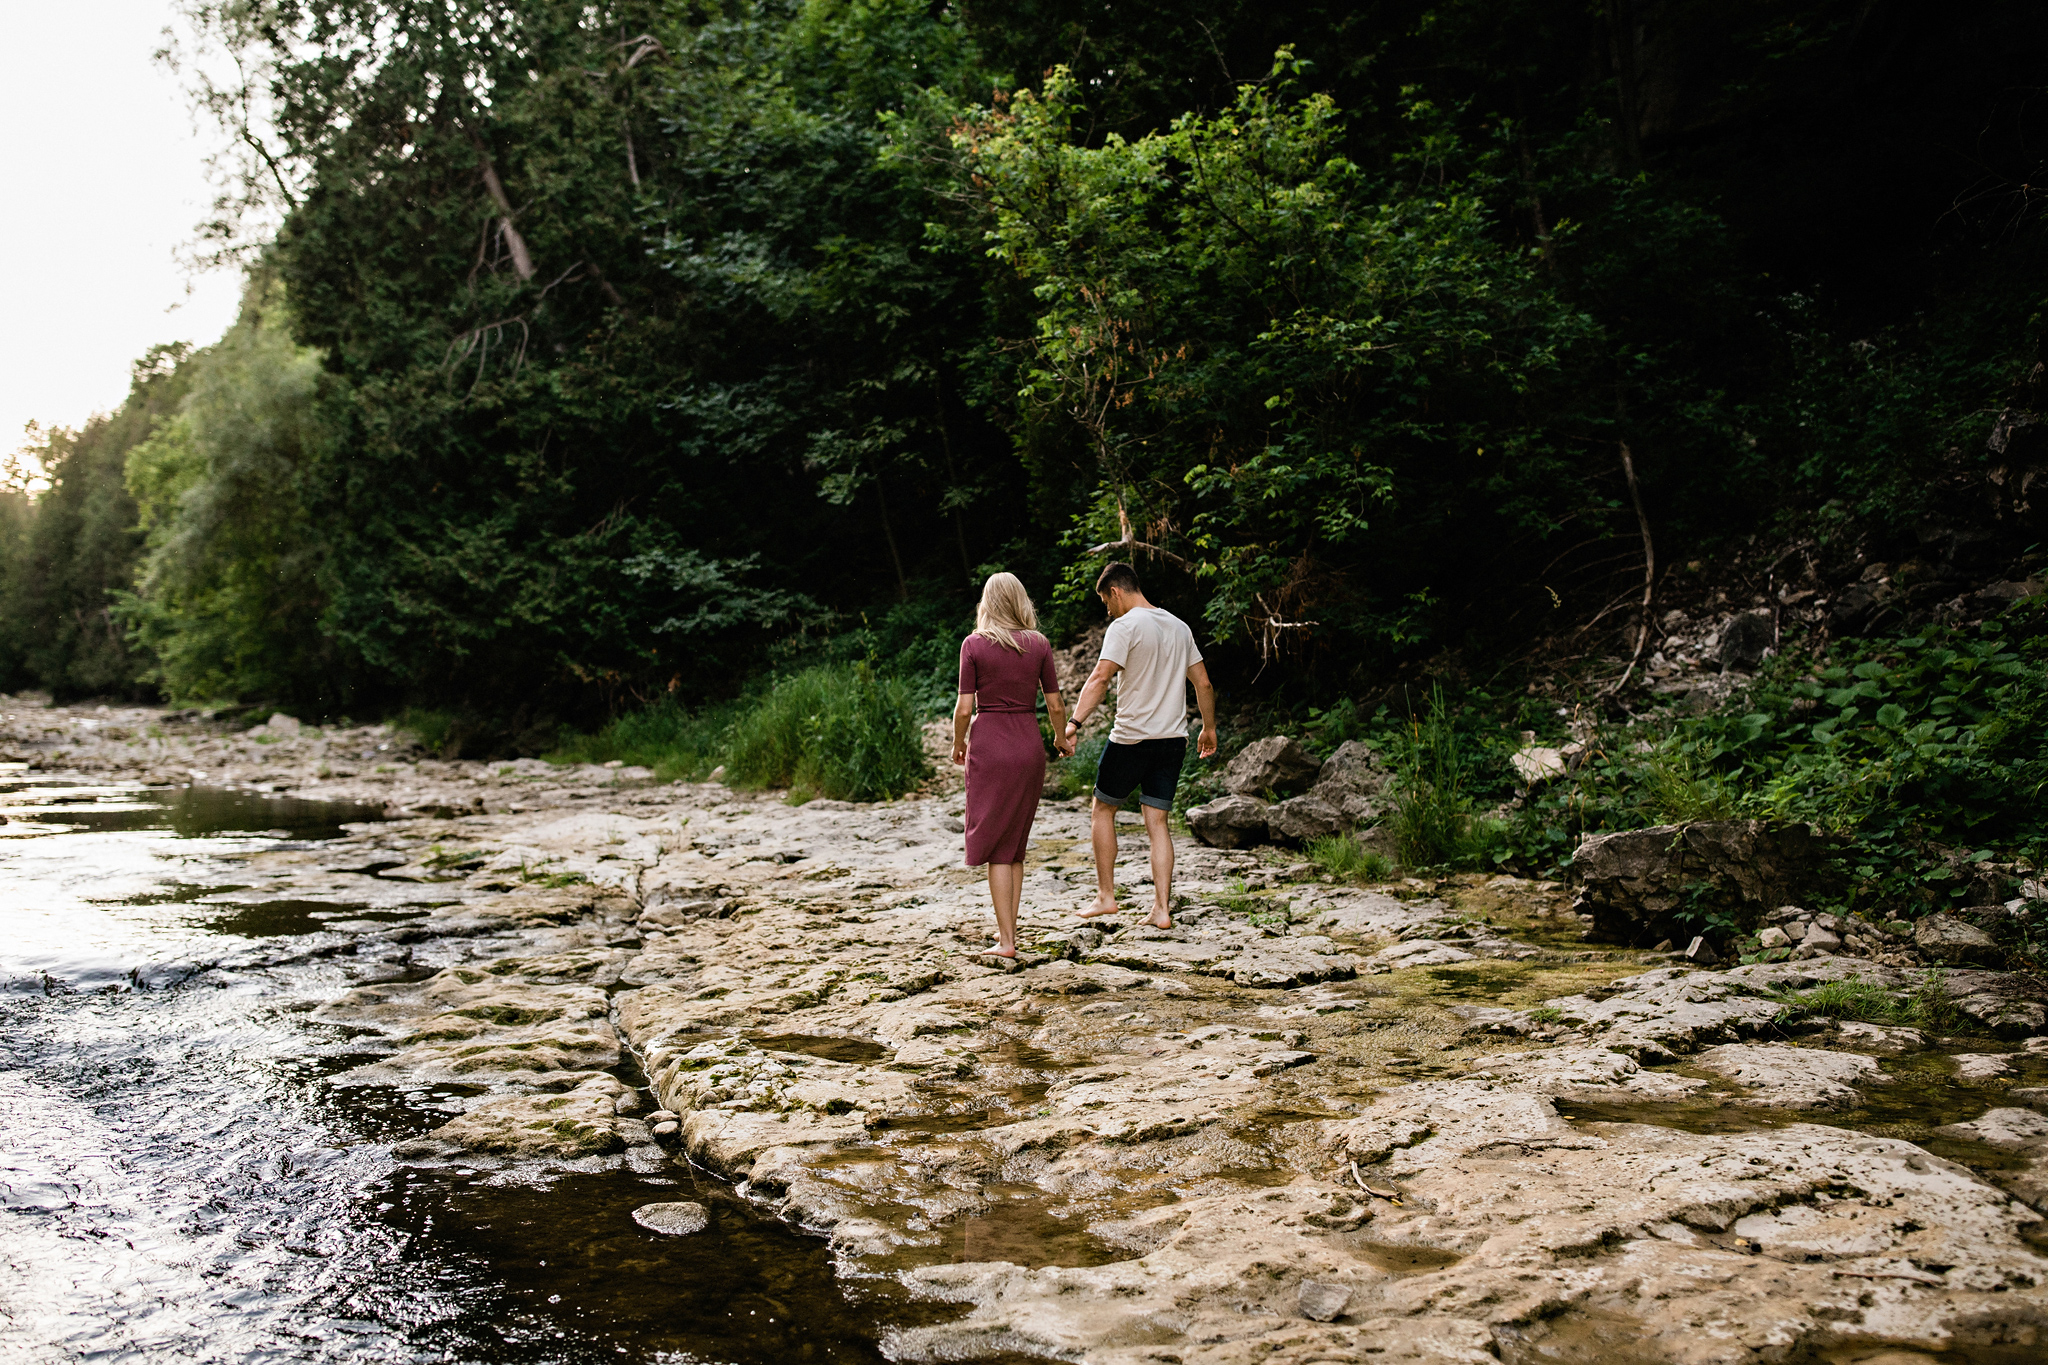 258-romantic-summer-elora-gorge-sunset-engagement-session.jpg